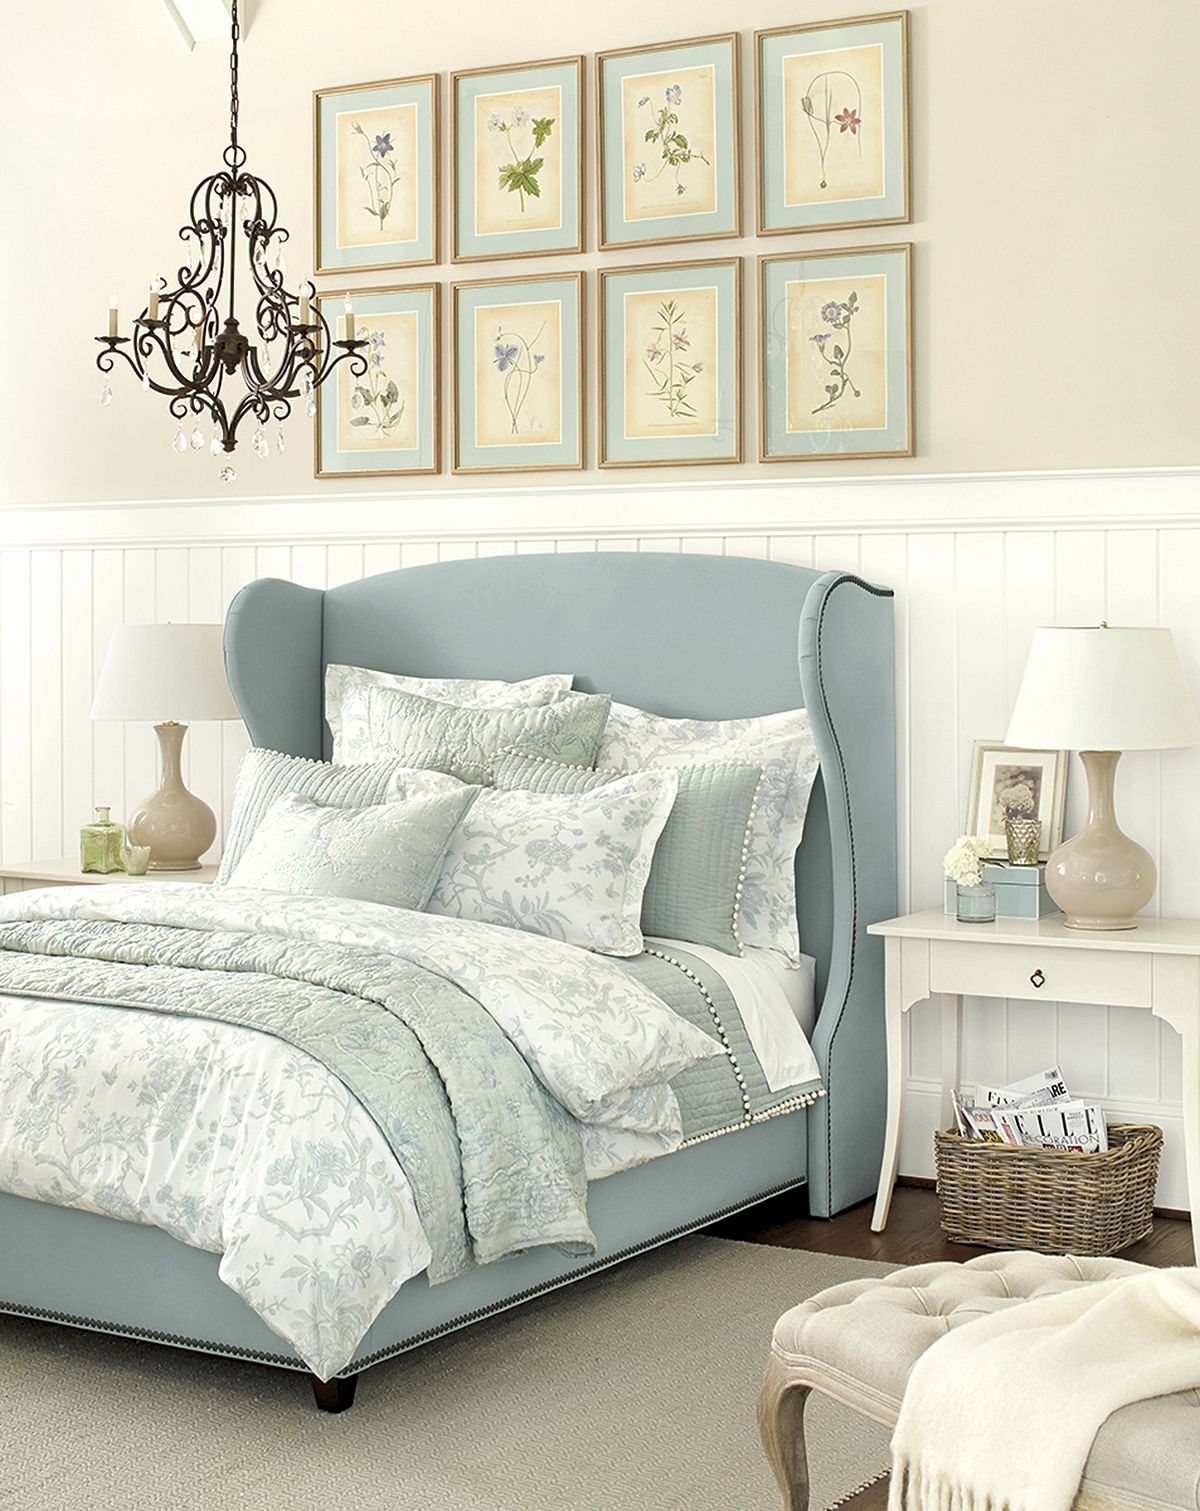 photo gallery | Tan walls, Blue bed and Wainscoting